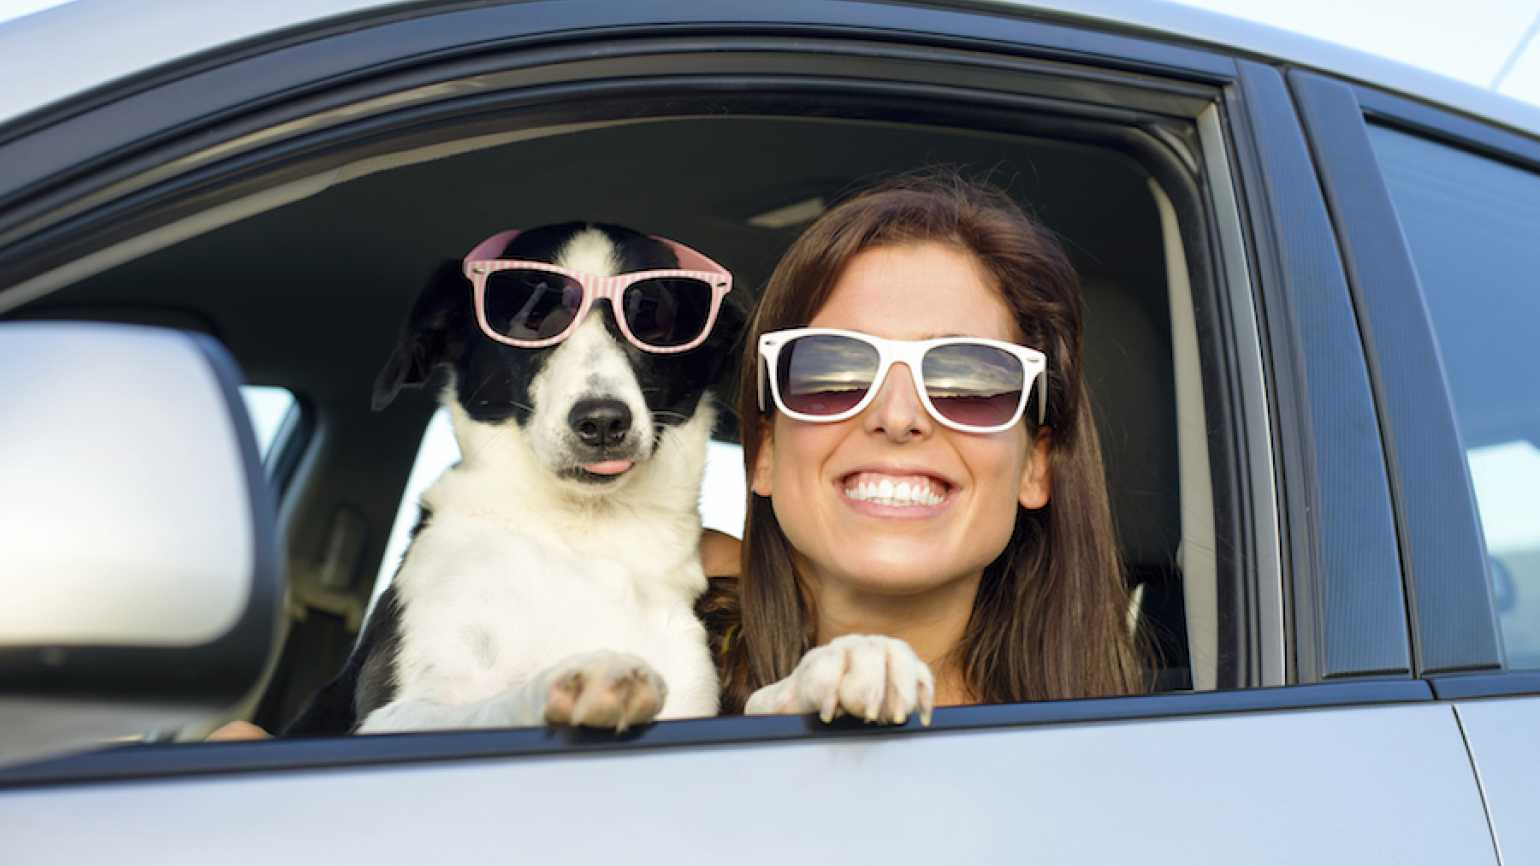 Take care of your pets on vacation.